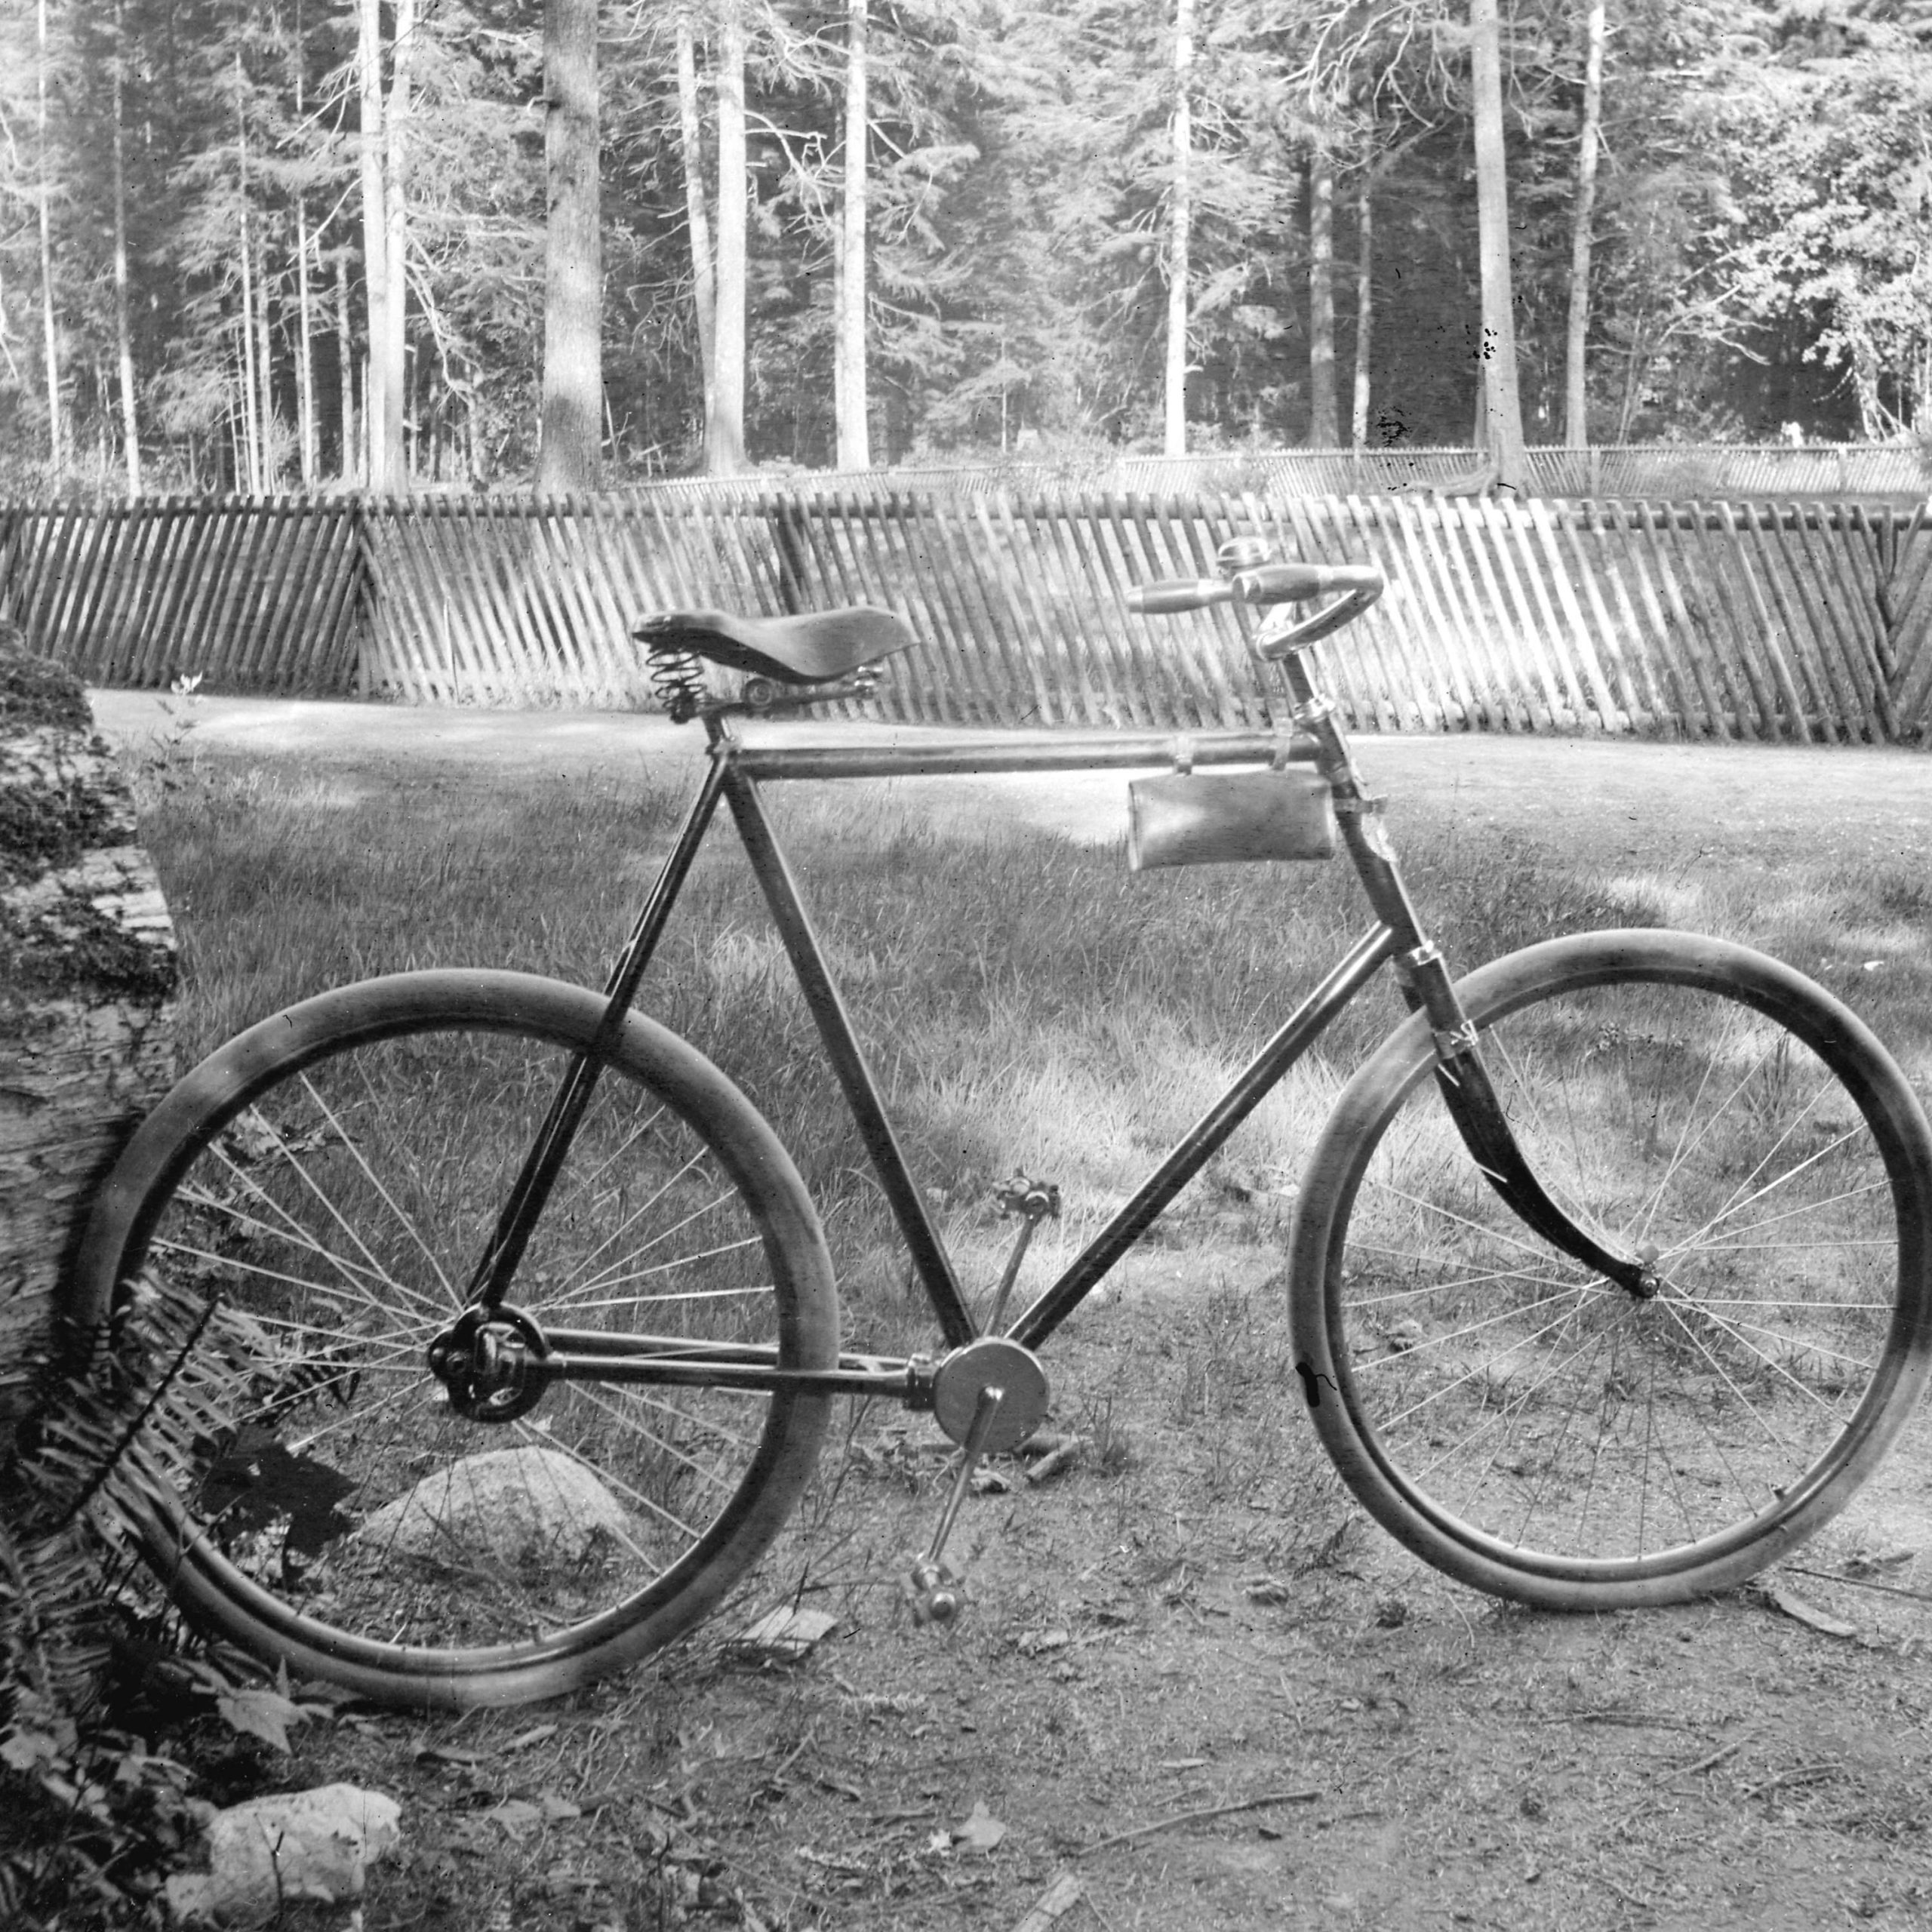 Chainless bicycle at old pond. Reference code: AM54-S4-: CVA 466-16